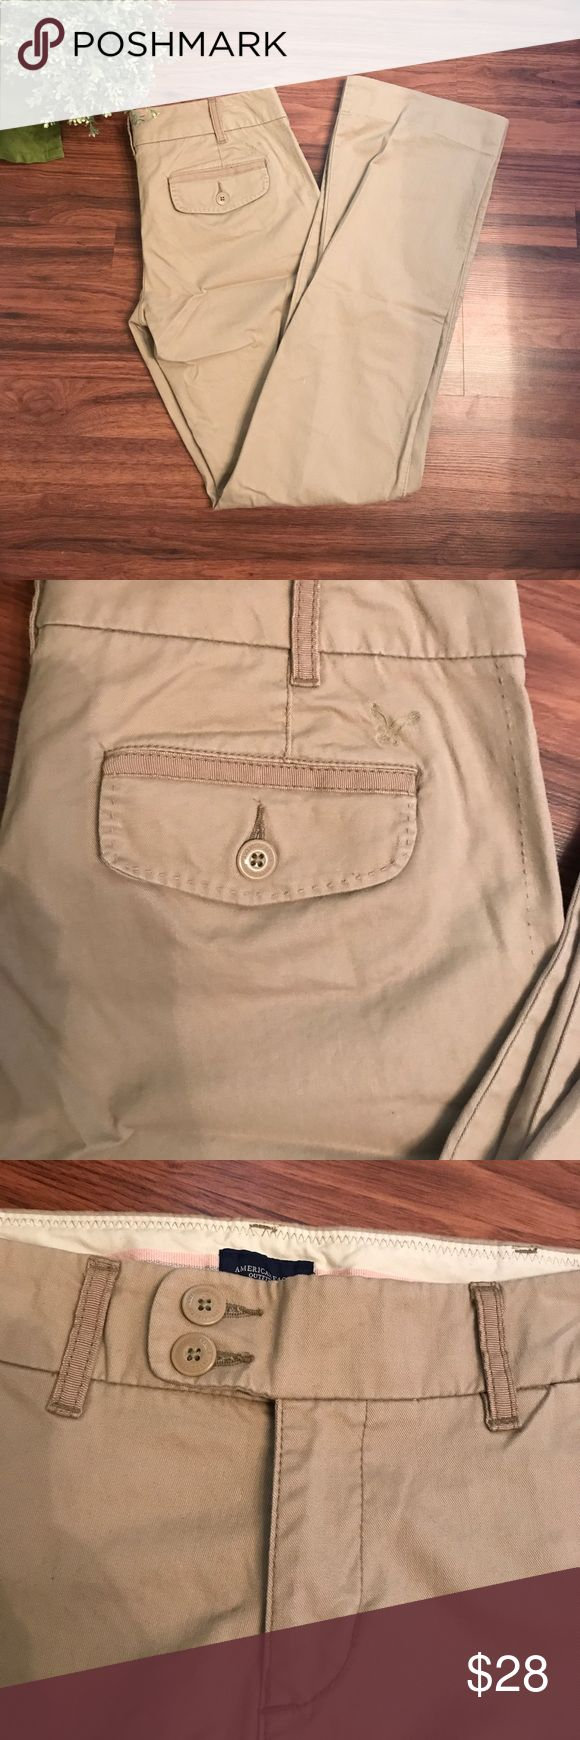 AE khaki chinos Trouser leg. Classic khaki color. Cute polka dot lining. Size 6Long. Excellent condition! American Eagle Outfitters Pants Trousers